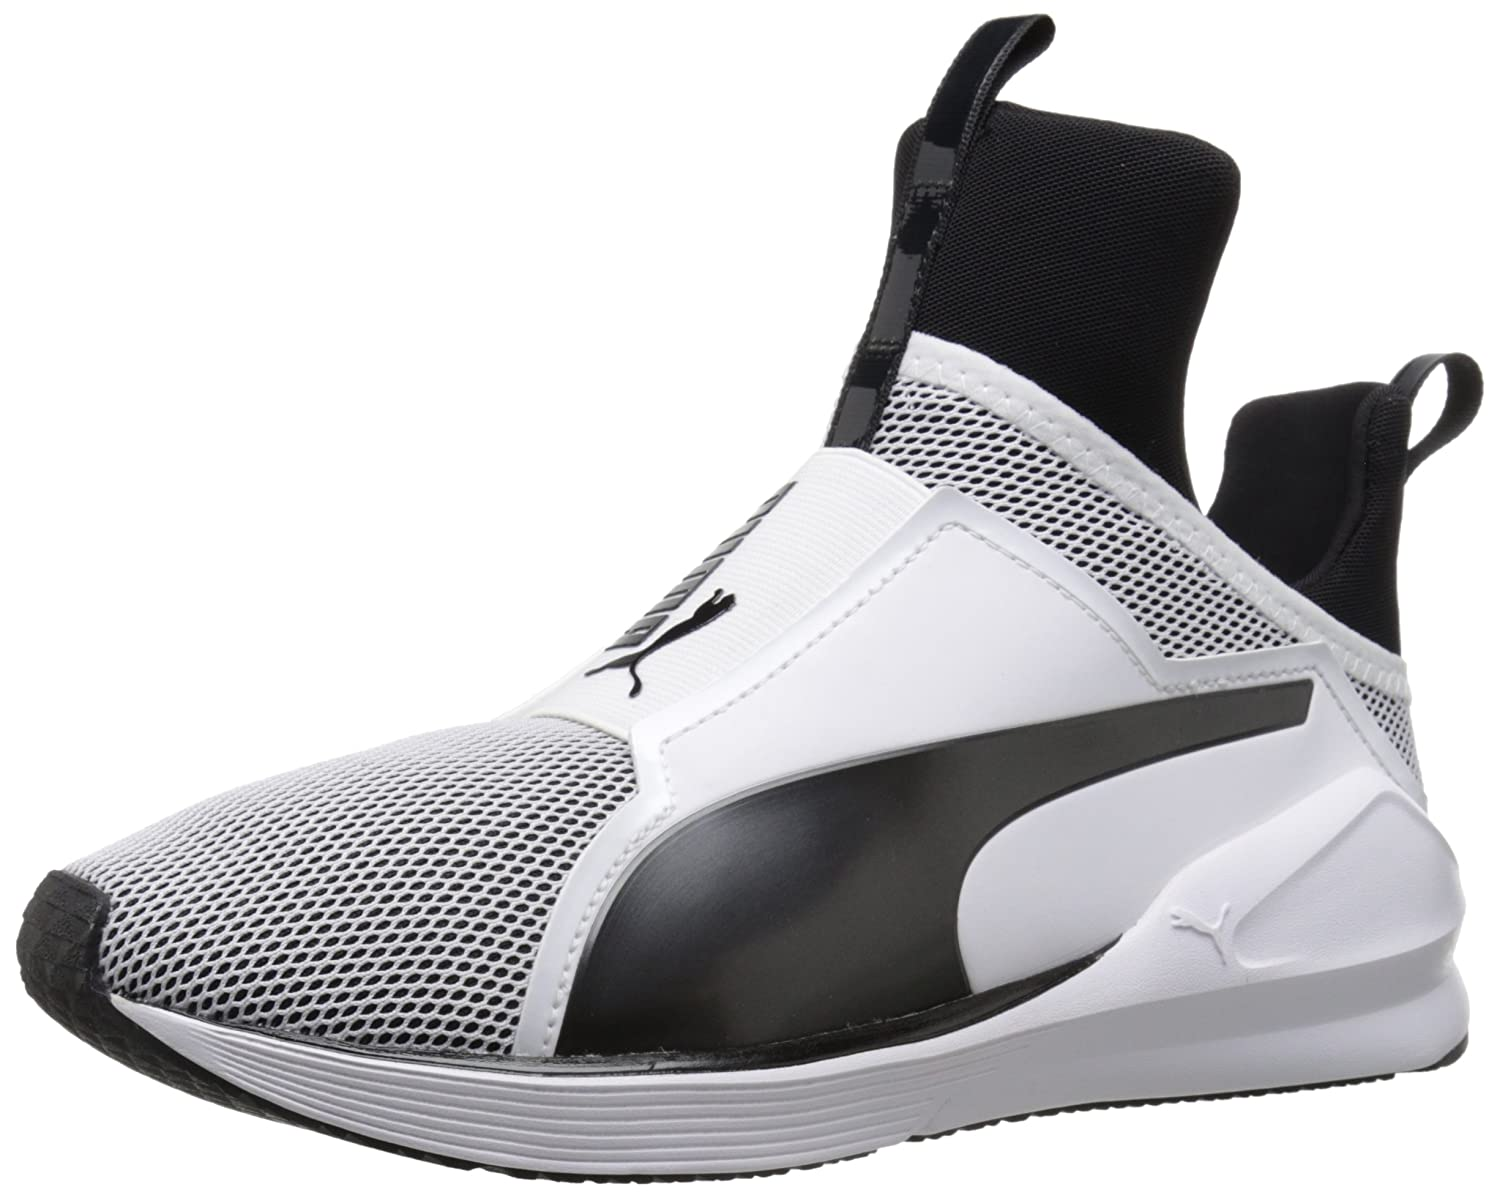 PUMA Women's Fierce Core Cross-Trainer Shoe B01BOUG3J6 6.5 B(M) US|Puma White/Puma Black